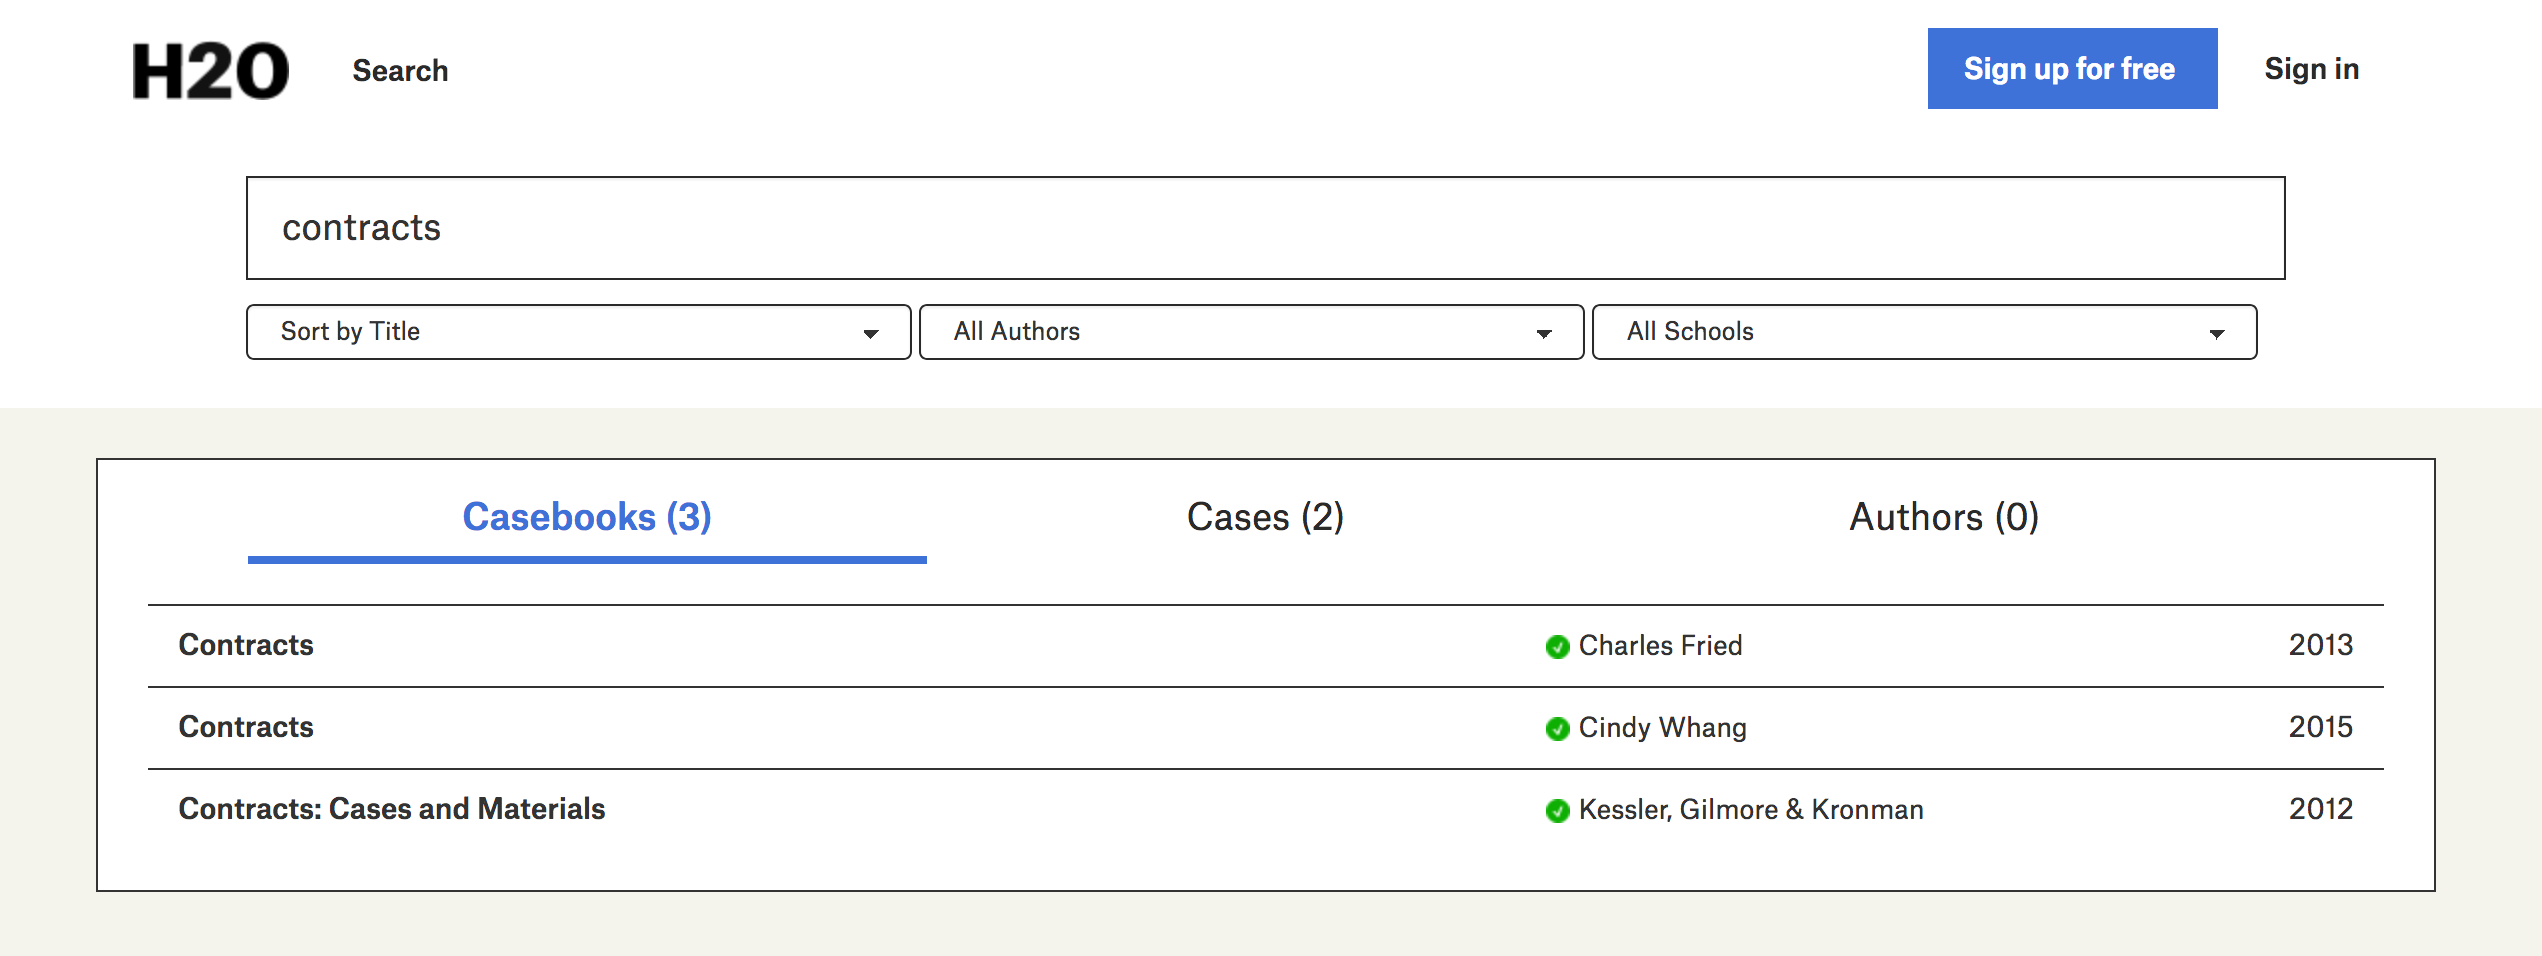 A screenshot of the search results page, showing casebooks authored by verified professors, each of which is designated by a green check mark.